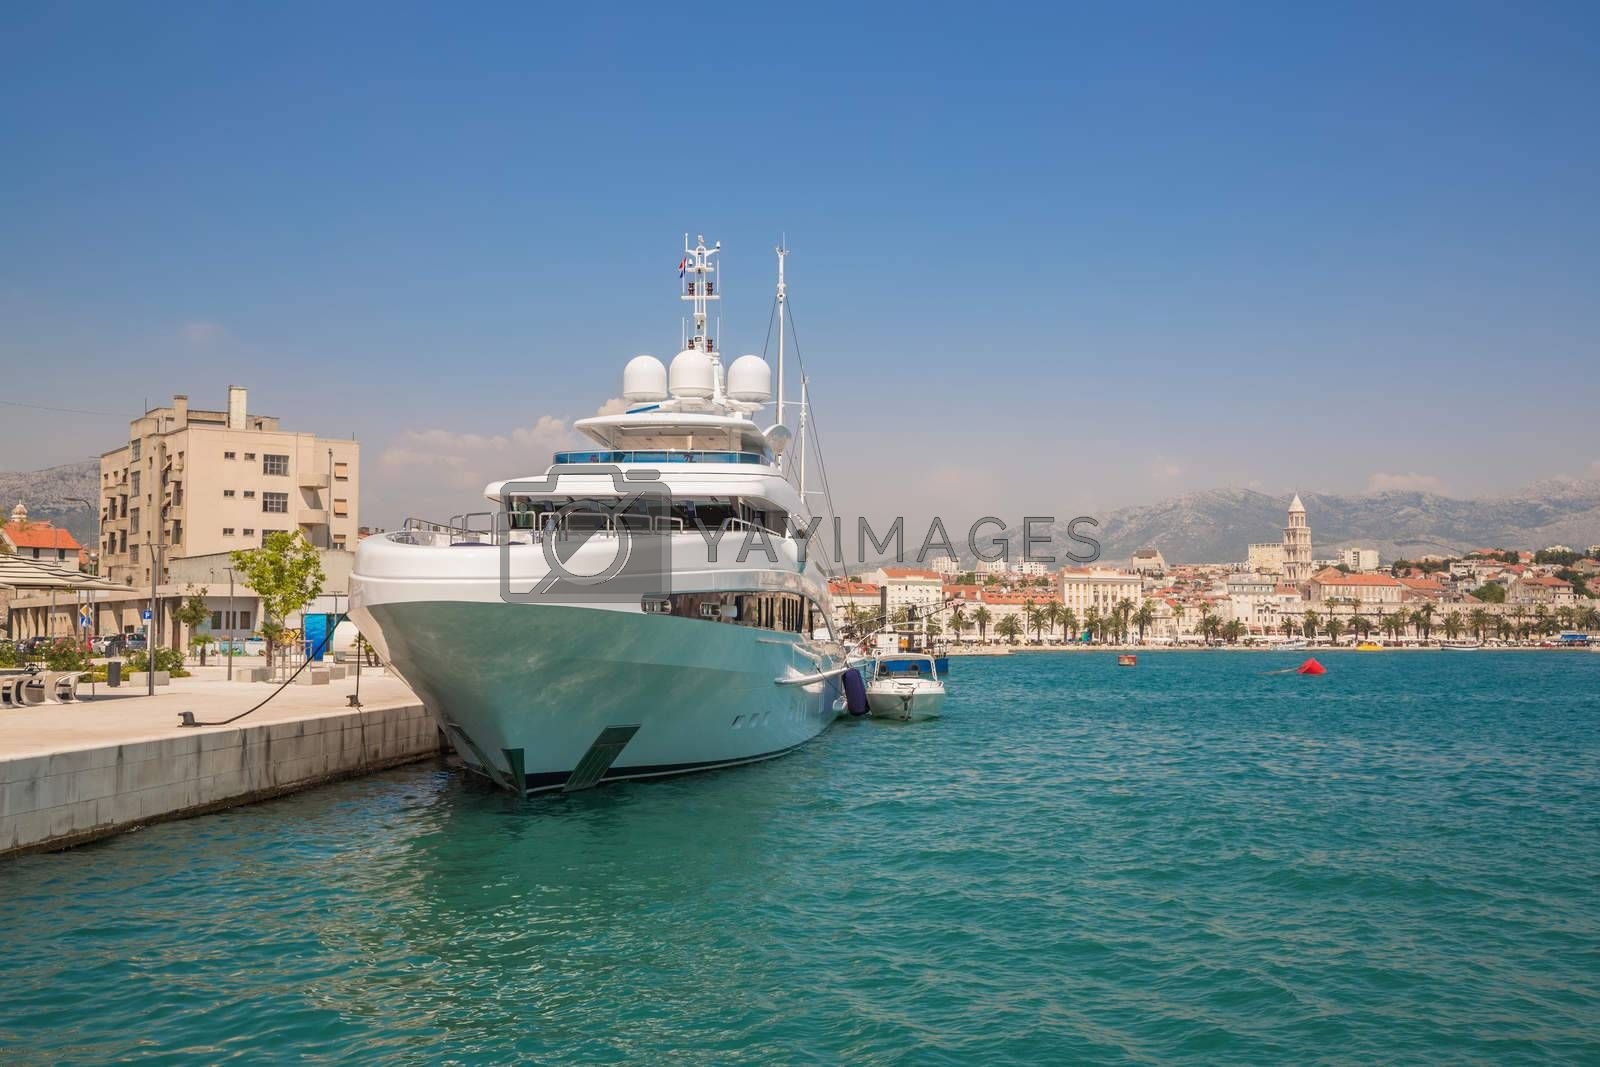 Royalty free image of Large yacht at the pier by Sid10